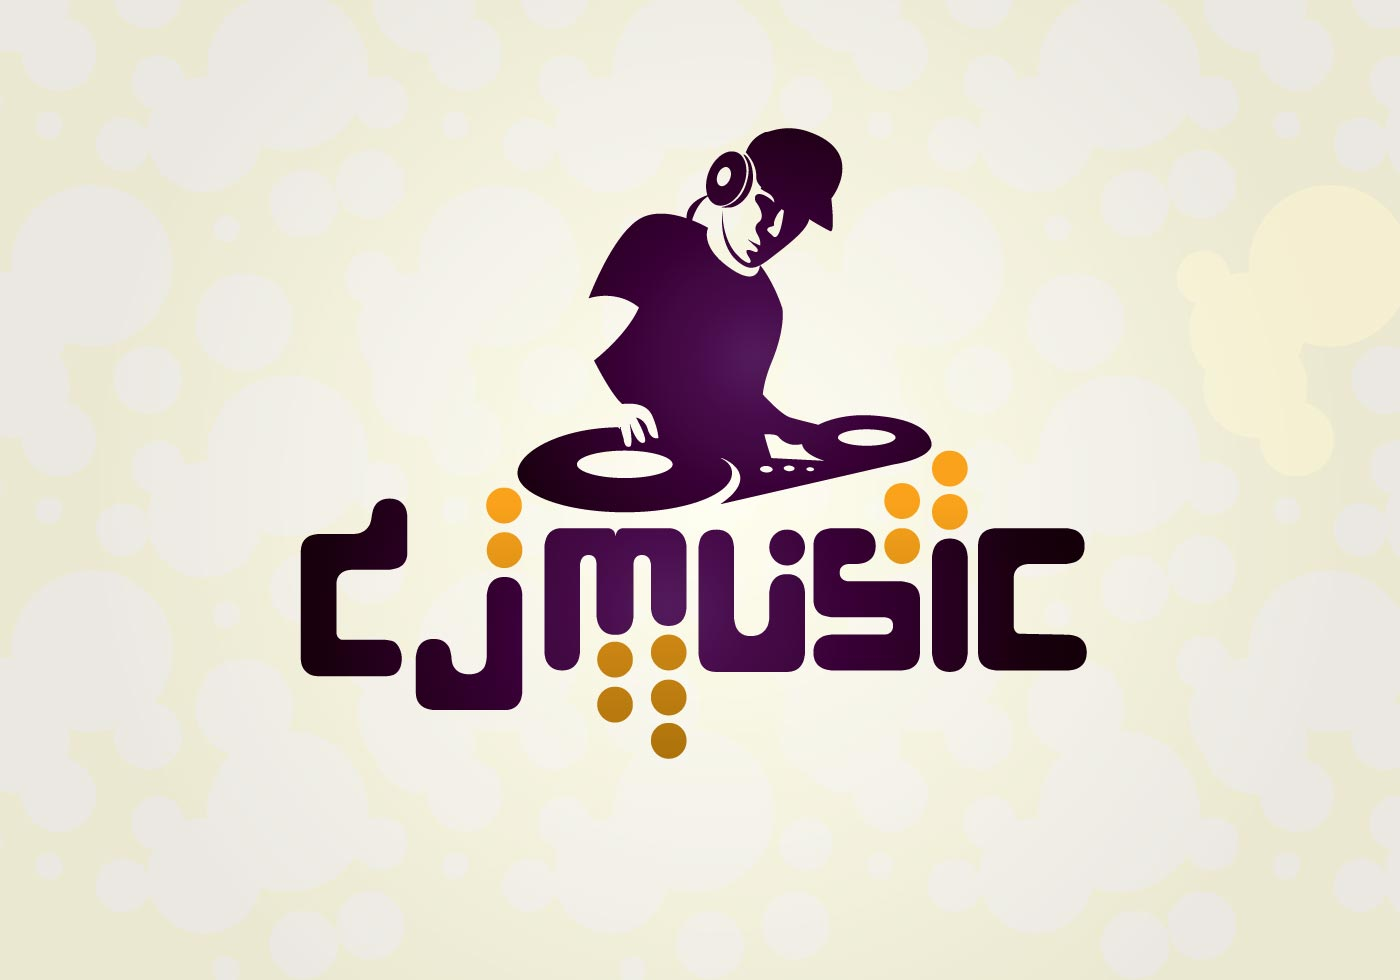 dj music logo download free vector art  stock graphics filigree victorian moldings filigree vector patterns